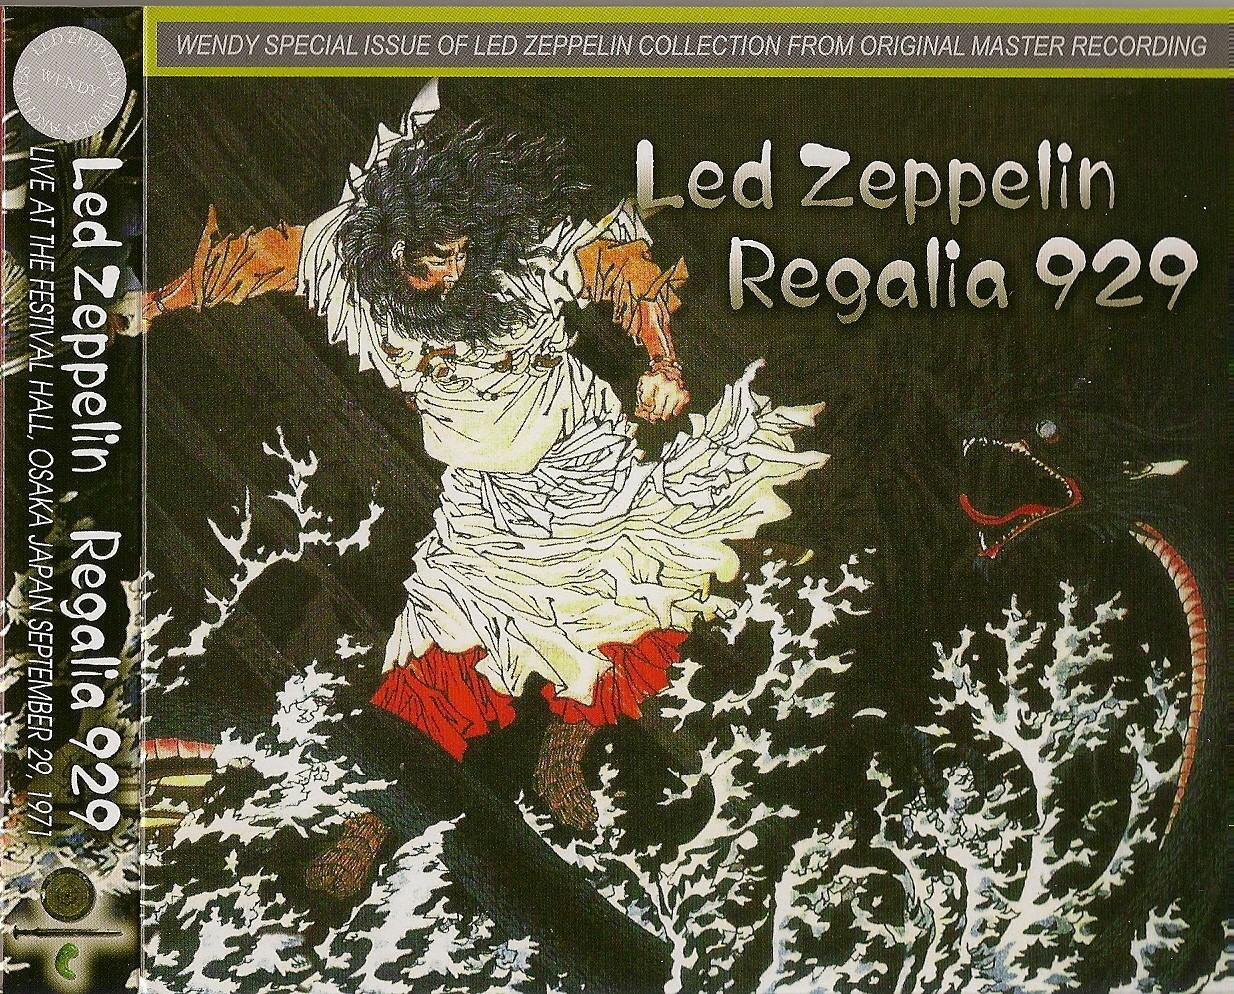 1971 - Led Zeppelin - Regalia 929 - Osaka